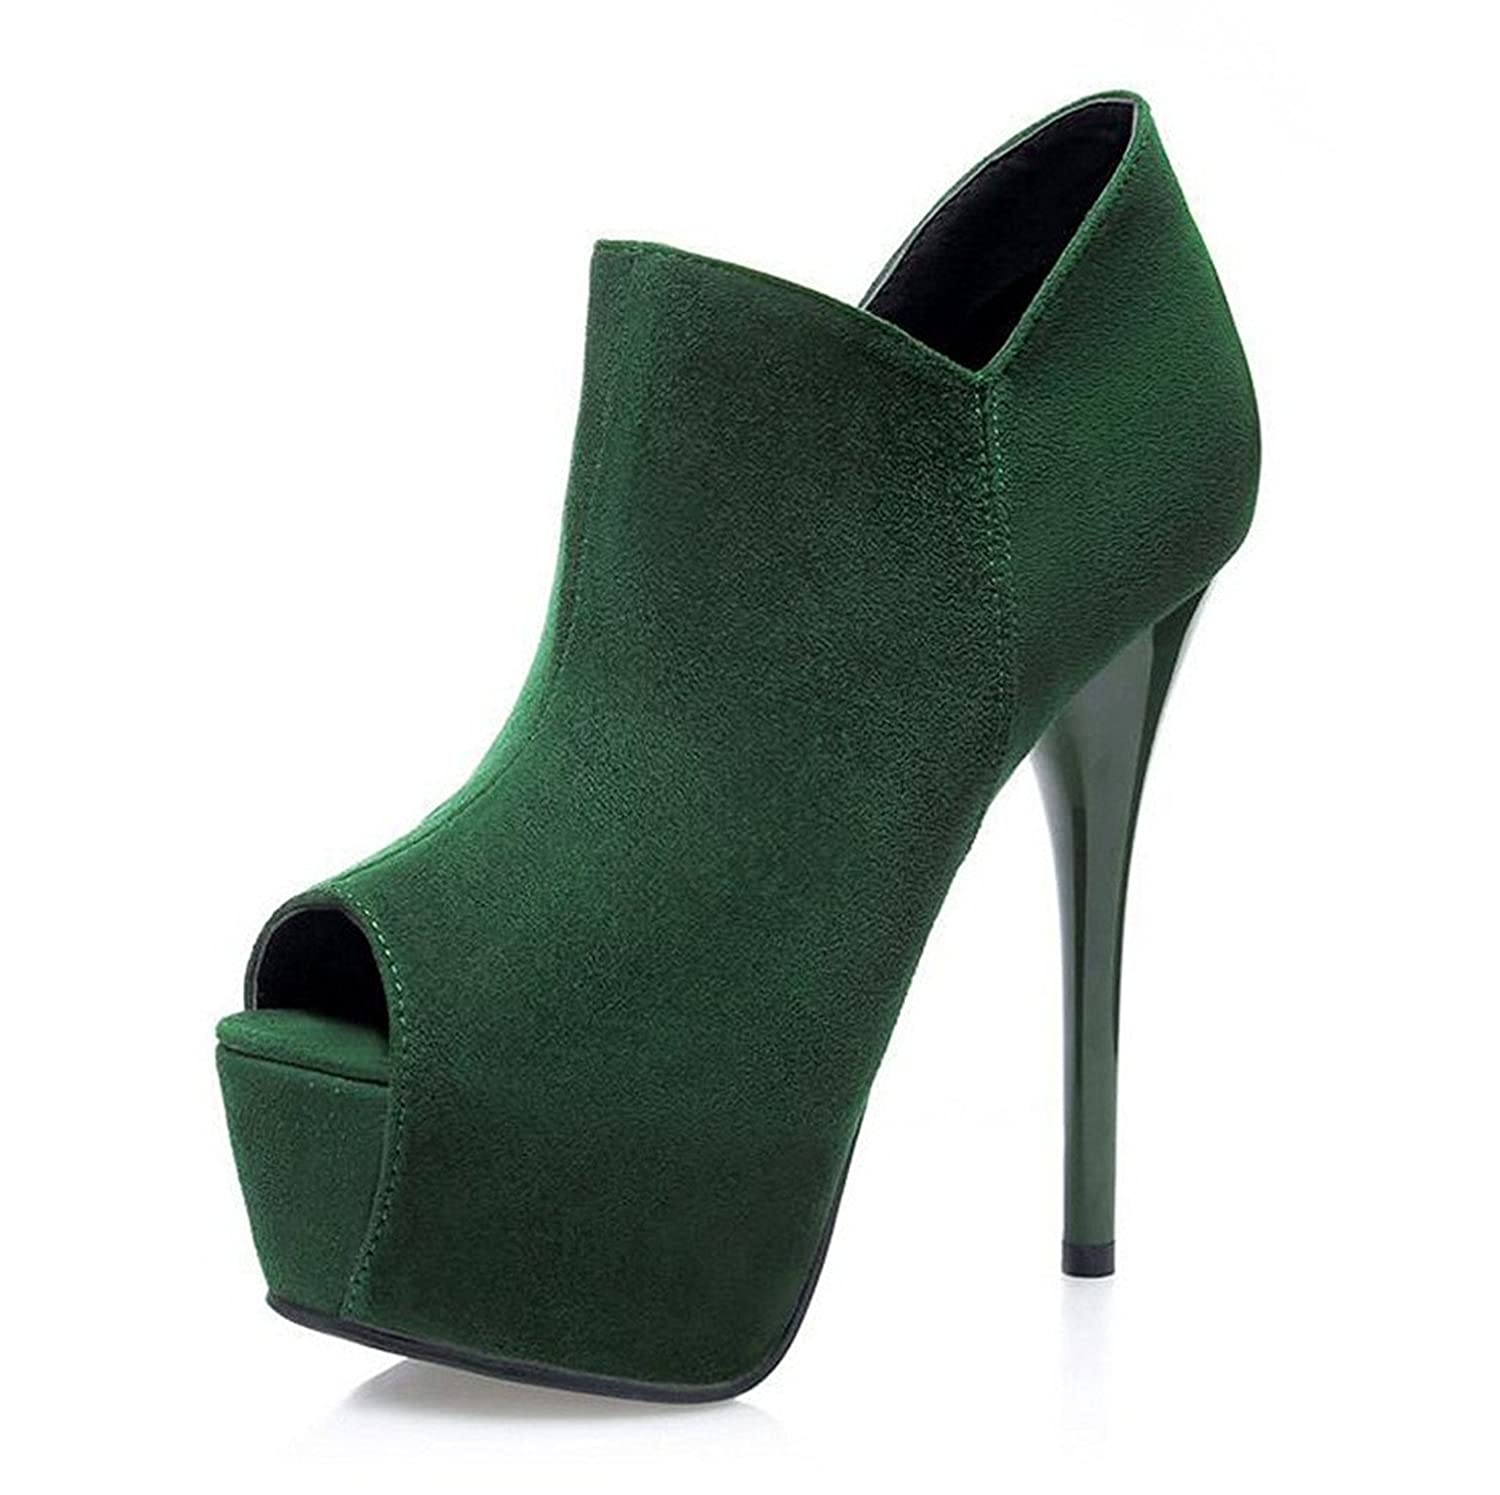 shiybugou Womens Round Peep-Toe Stiletto heel Ankle Boots Suede leather attractivedesign